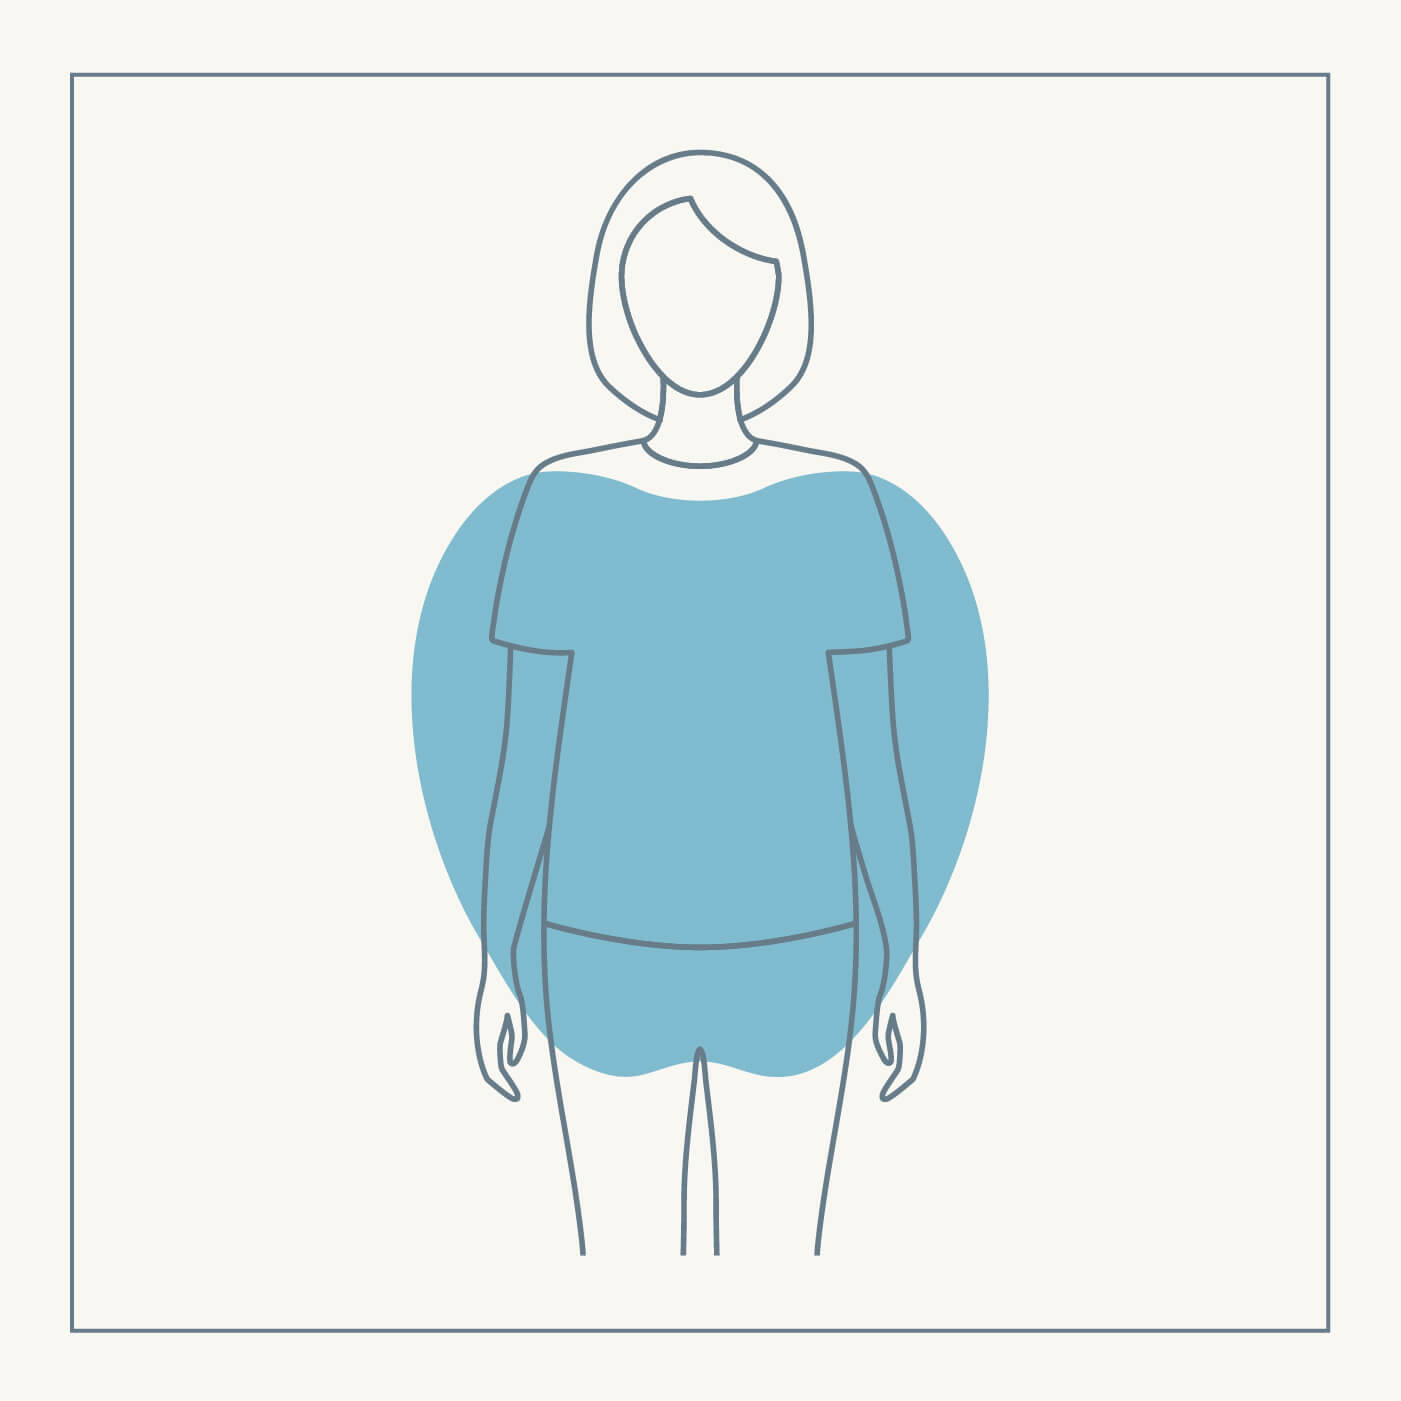 efa46beaf0264 The Facts About Figures: The Apple Shape | Stitch Fix Style